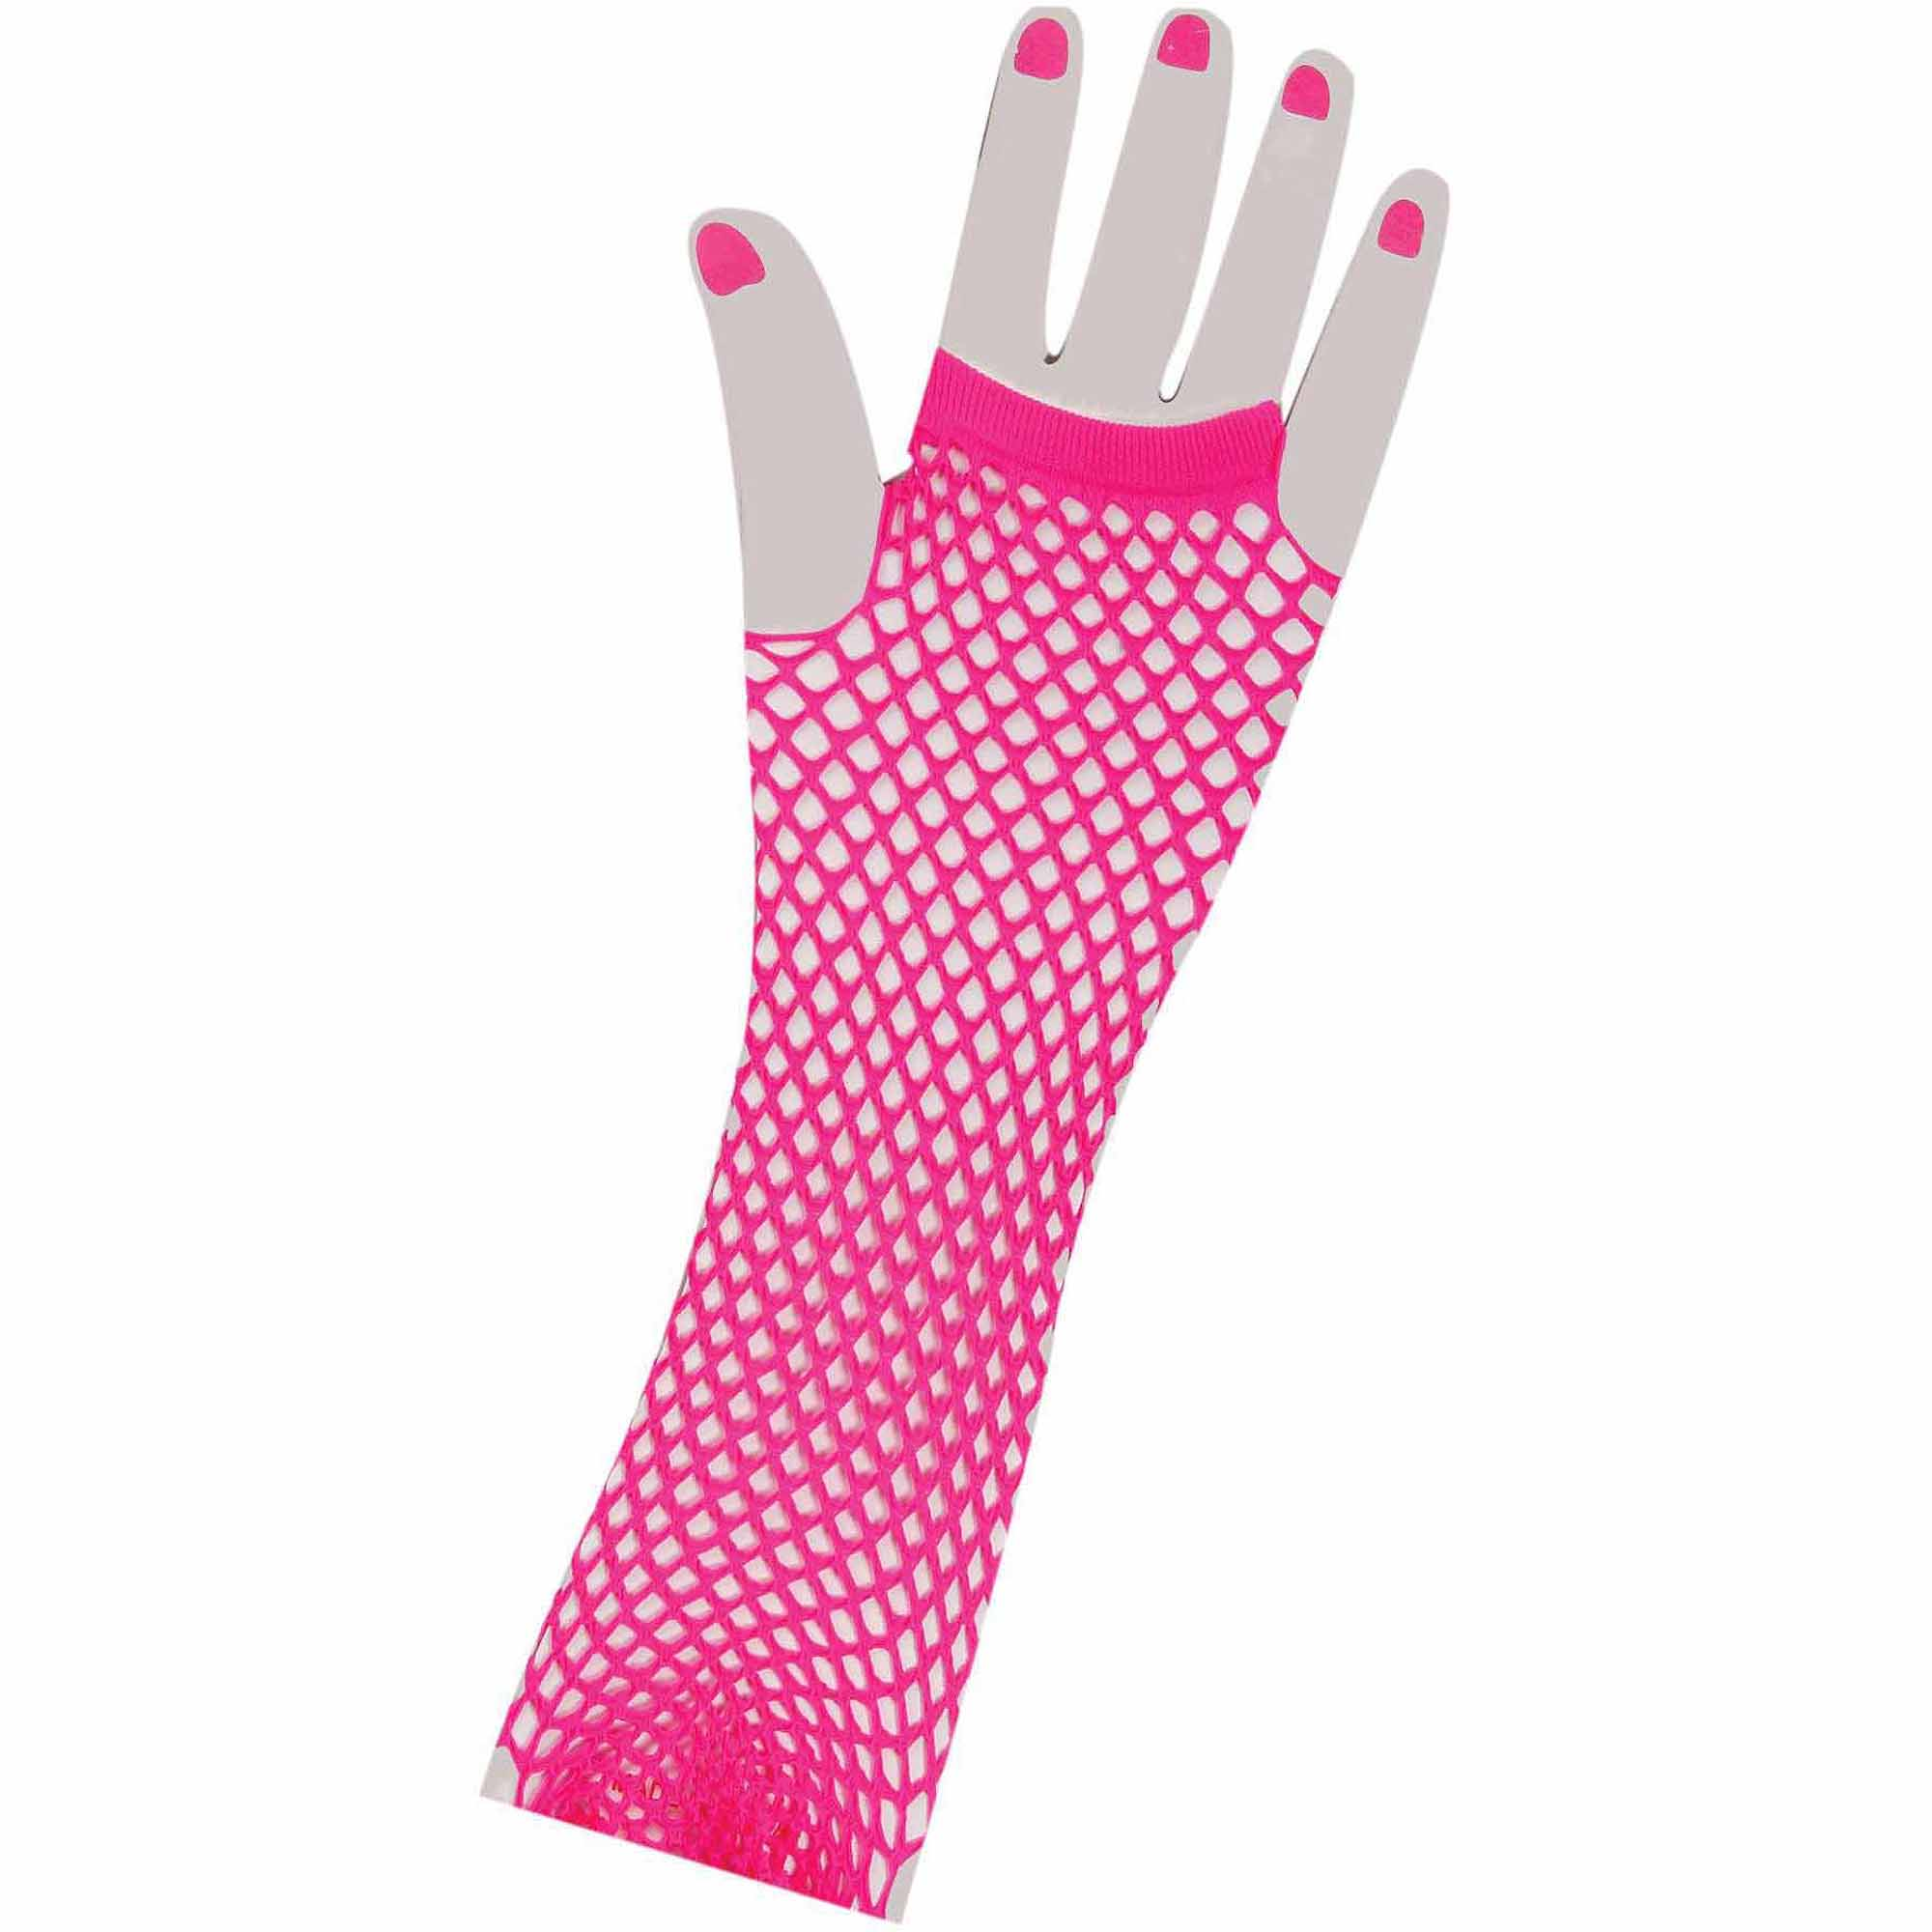 80's Neon Pink Long Fishnet Gloves Adult Halloween Accessory